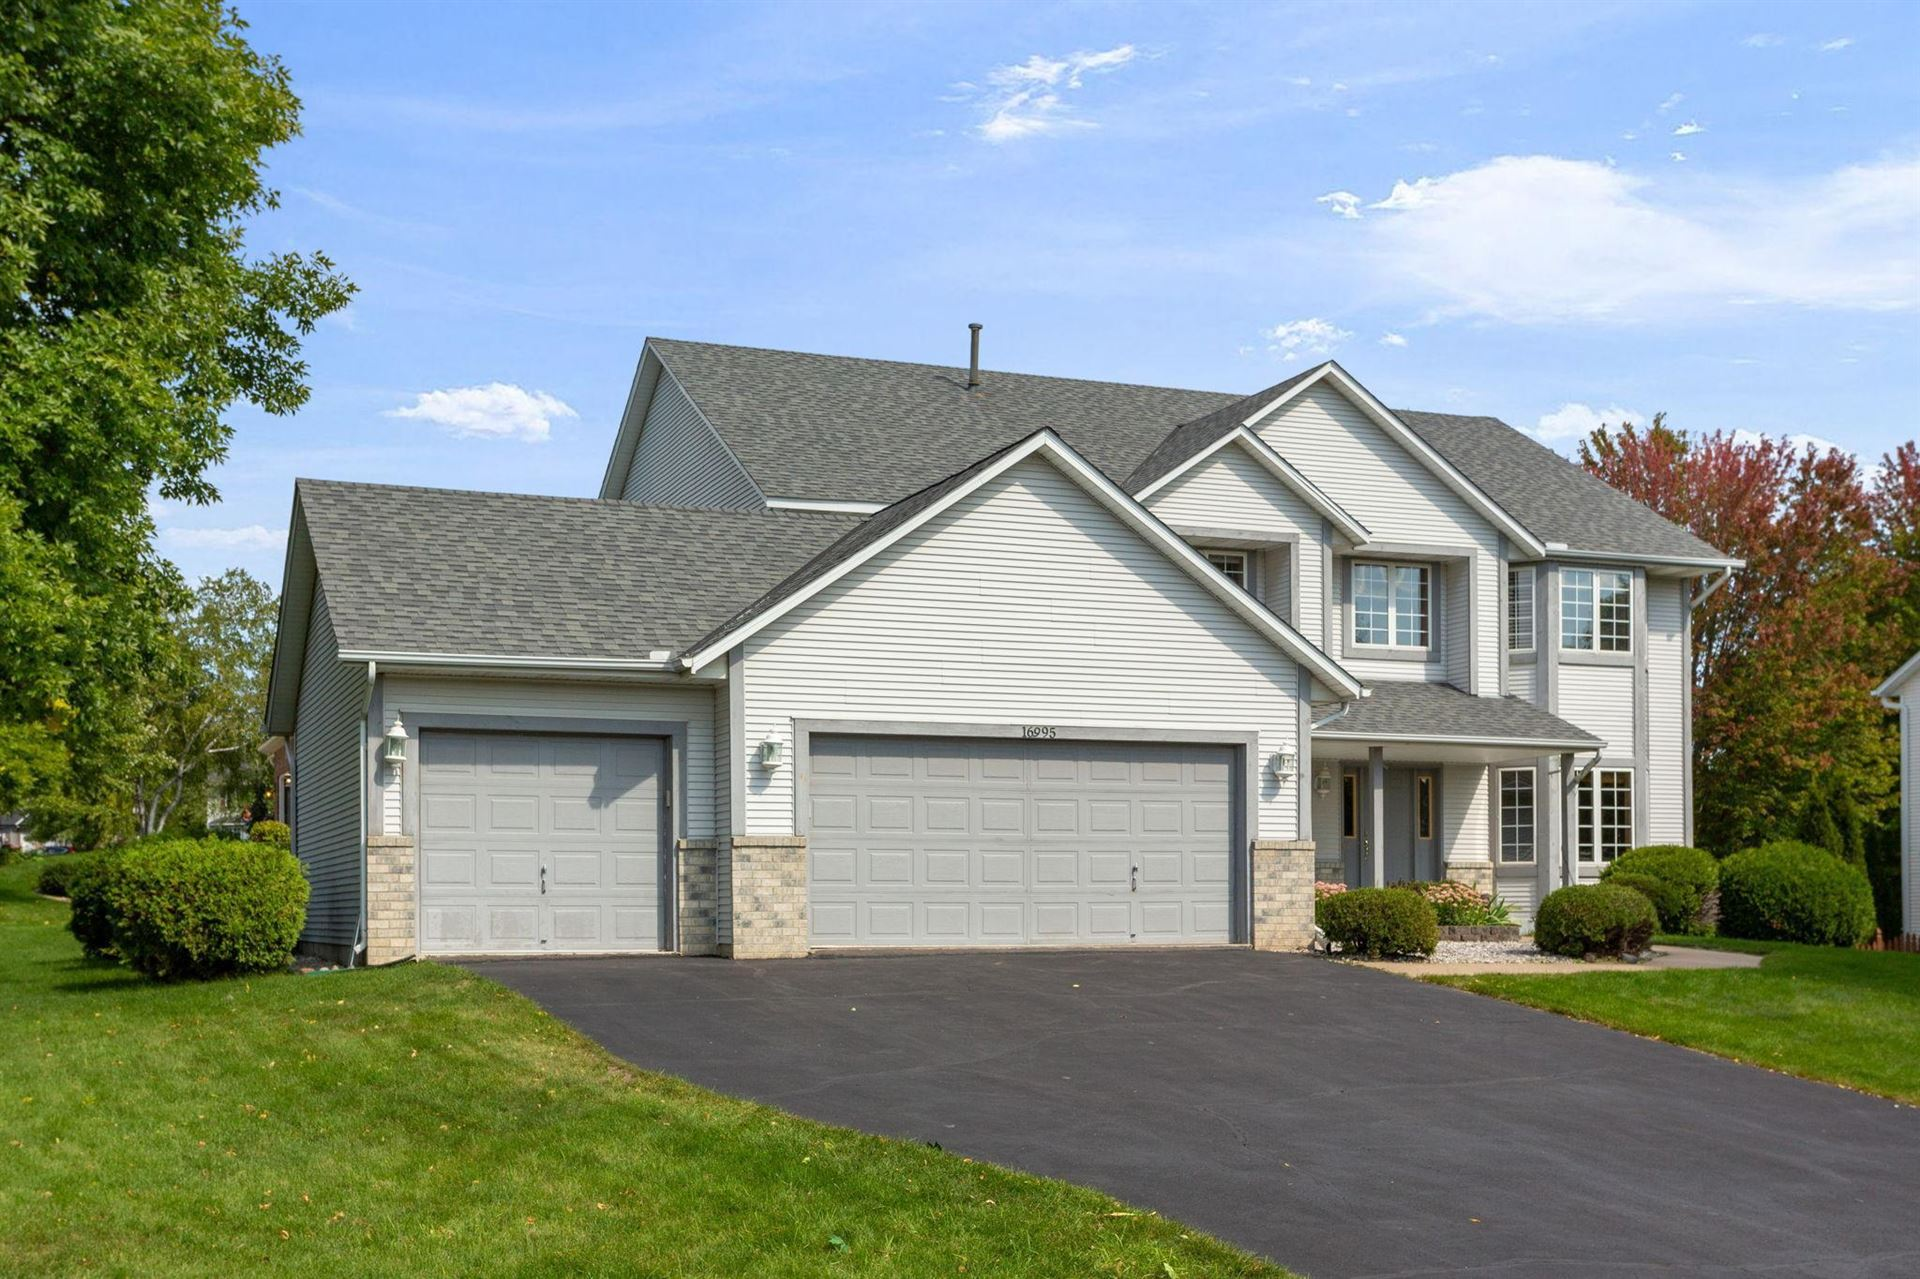 Photo of 16995 Hubbard Trail, Lakeville, MN 55044 (MLS # 6100721)